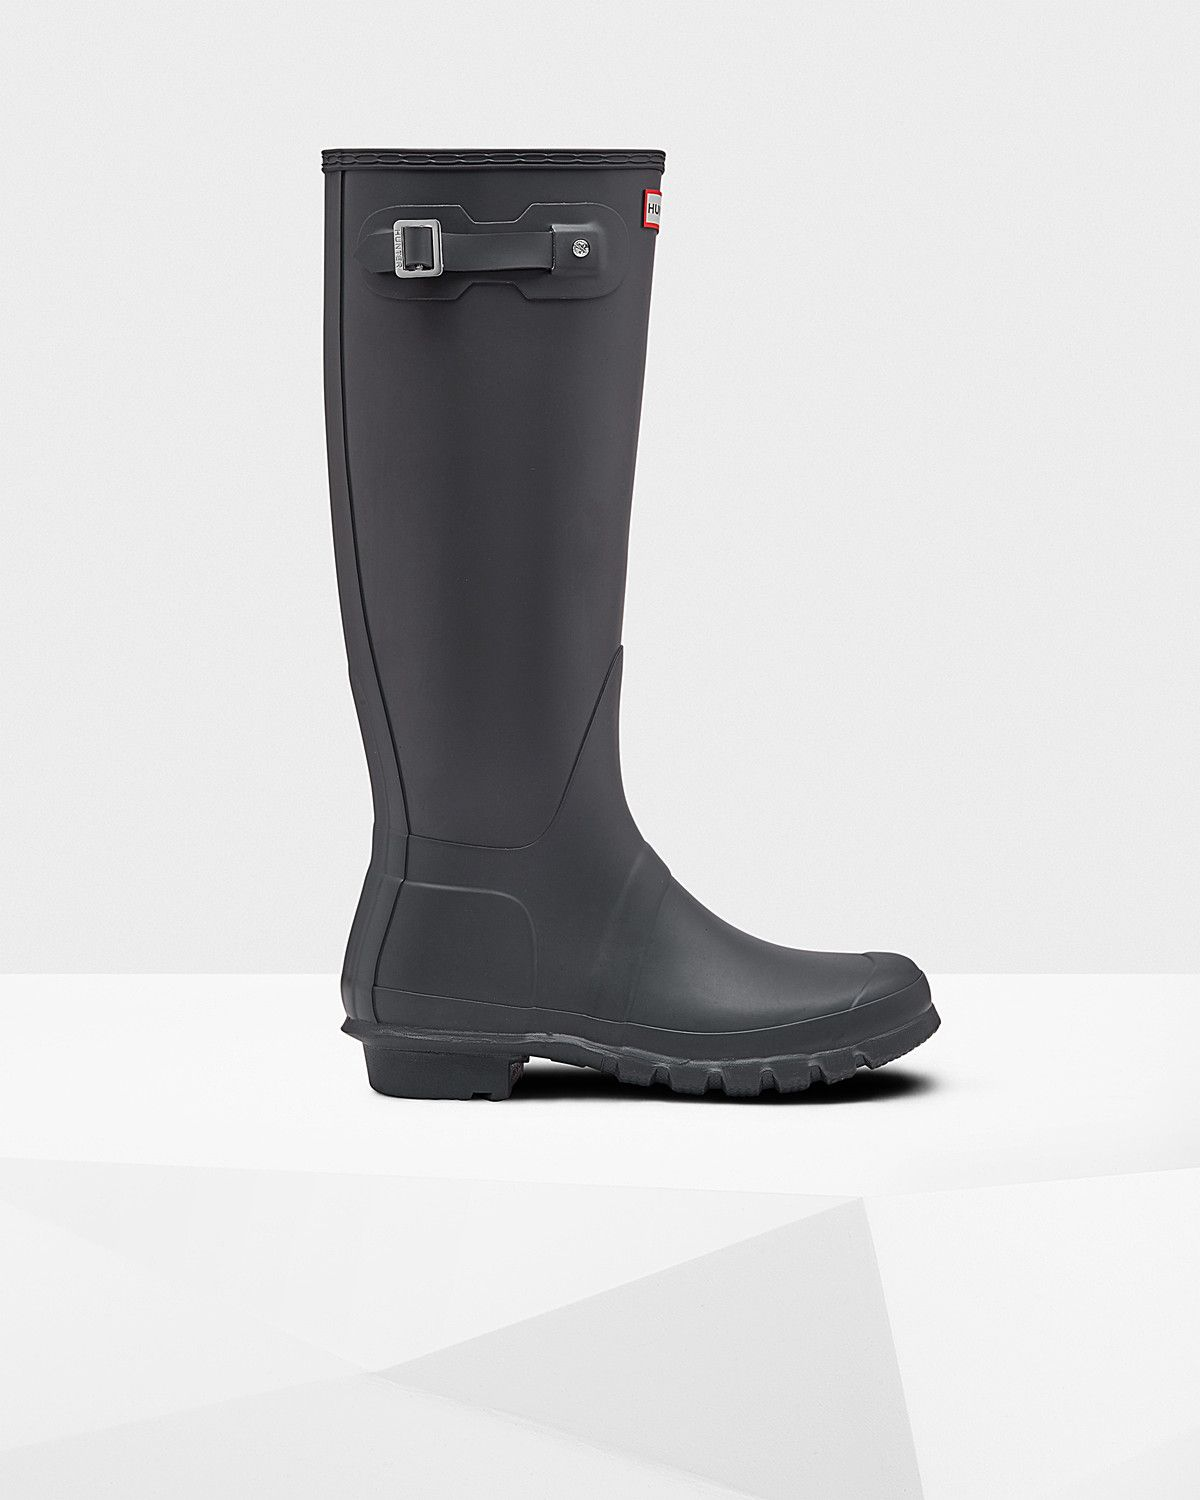 Womens Grey Tall Rain Boots | Official US Hunter Boots Store ...